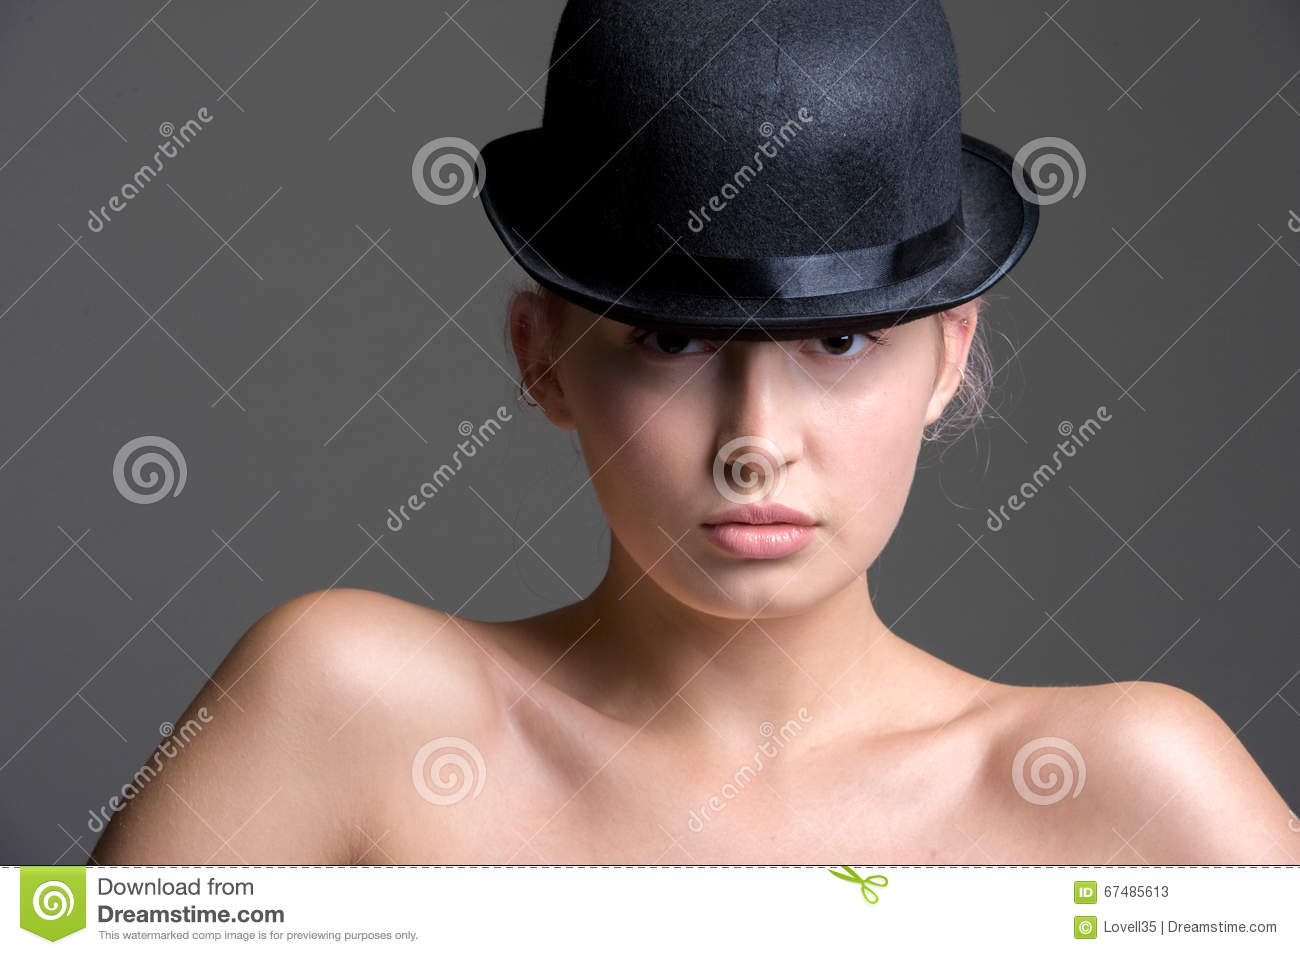 Girl Bowler Hat Stock Images - Download 1 37f4dee13419